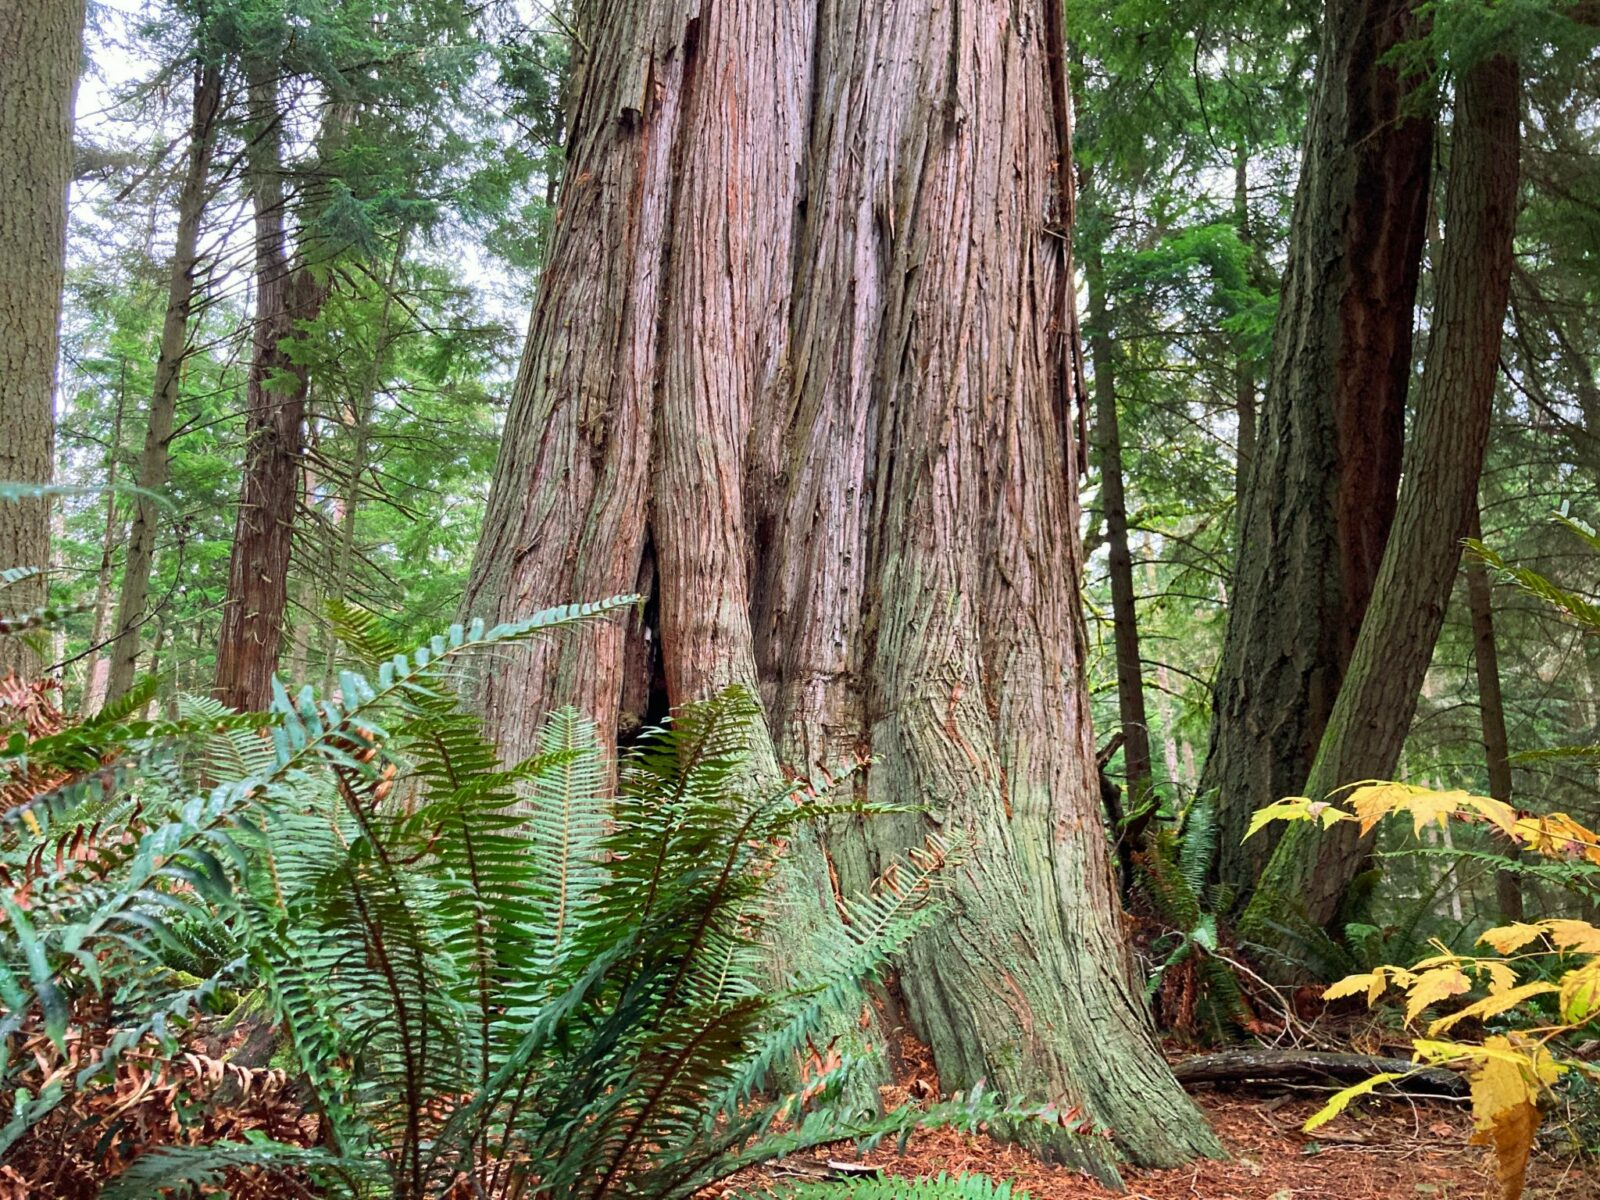 one of the best whidbey island hikes, the Wilbert Trail in South Whidbey state park features impressive old growth trees such as this cedar tree that is hundreds of years old. The base of the tree fills most of the image. The tree branches out a bit at the bottom and is surrounded by ferns